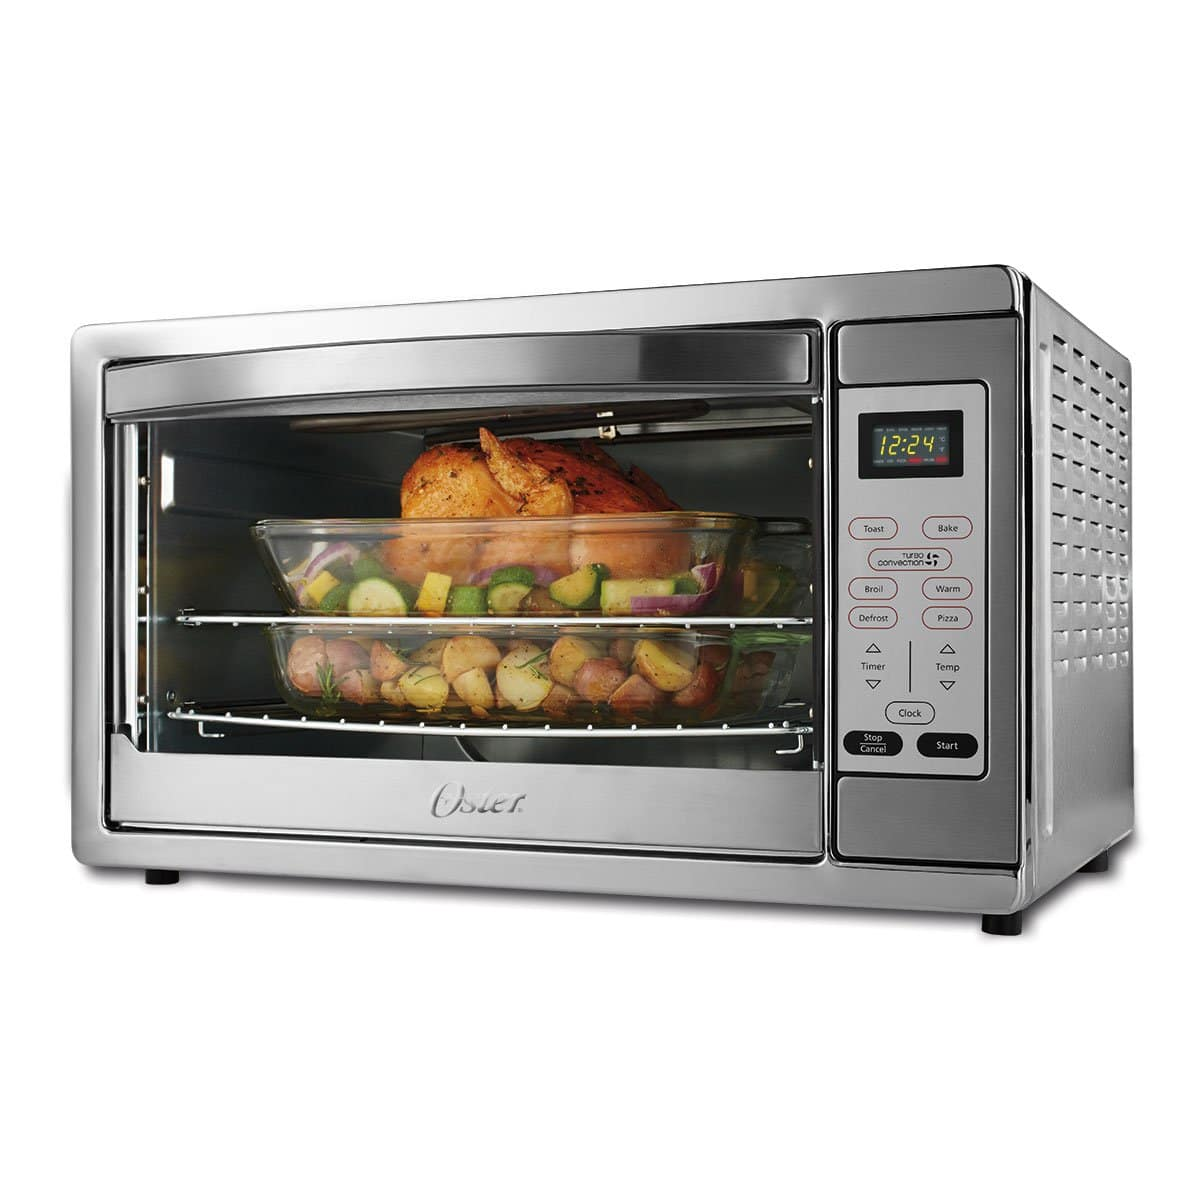 Oster Extra Large Stainless Steel Digital Countertop Oven for $56 AC + Free Shipping!